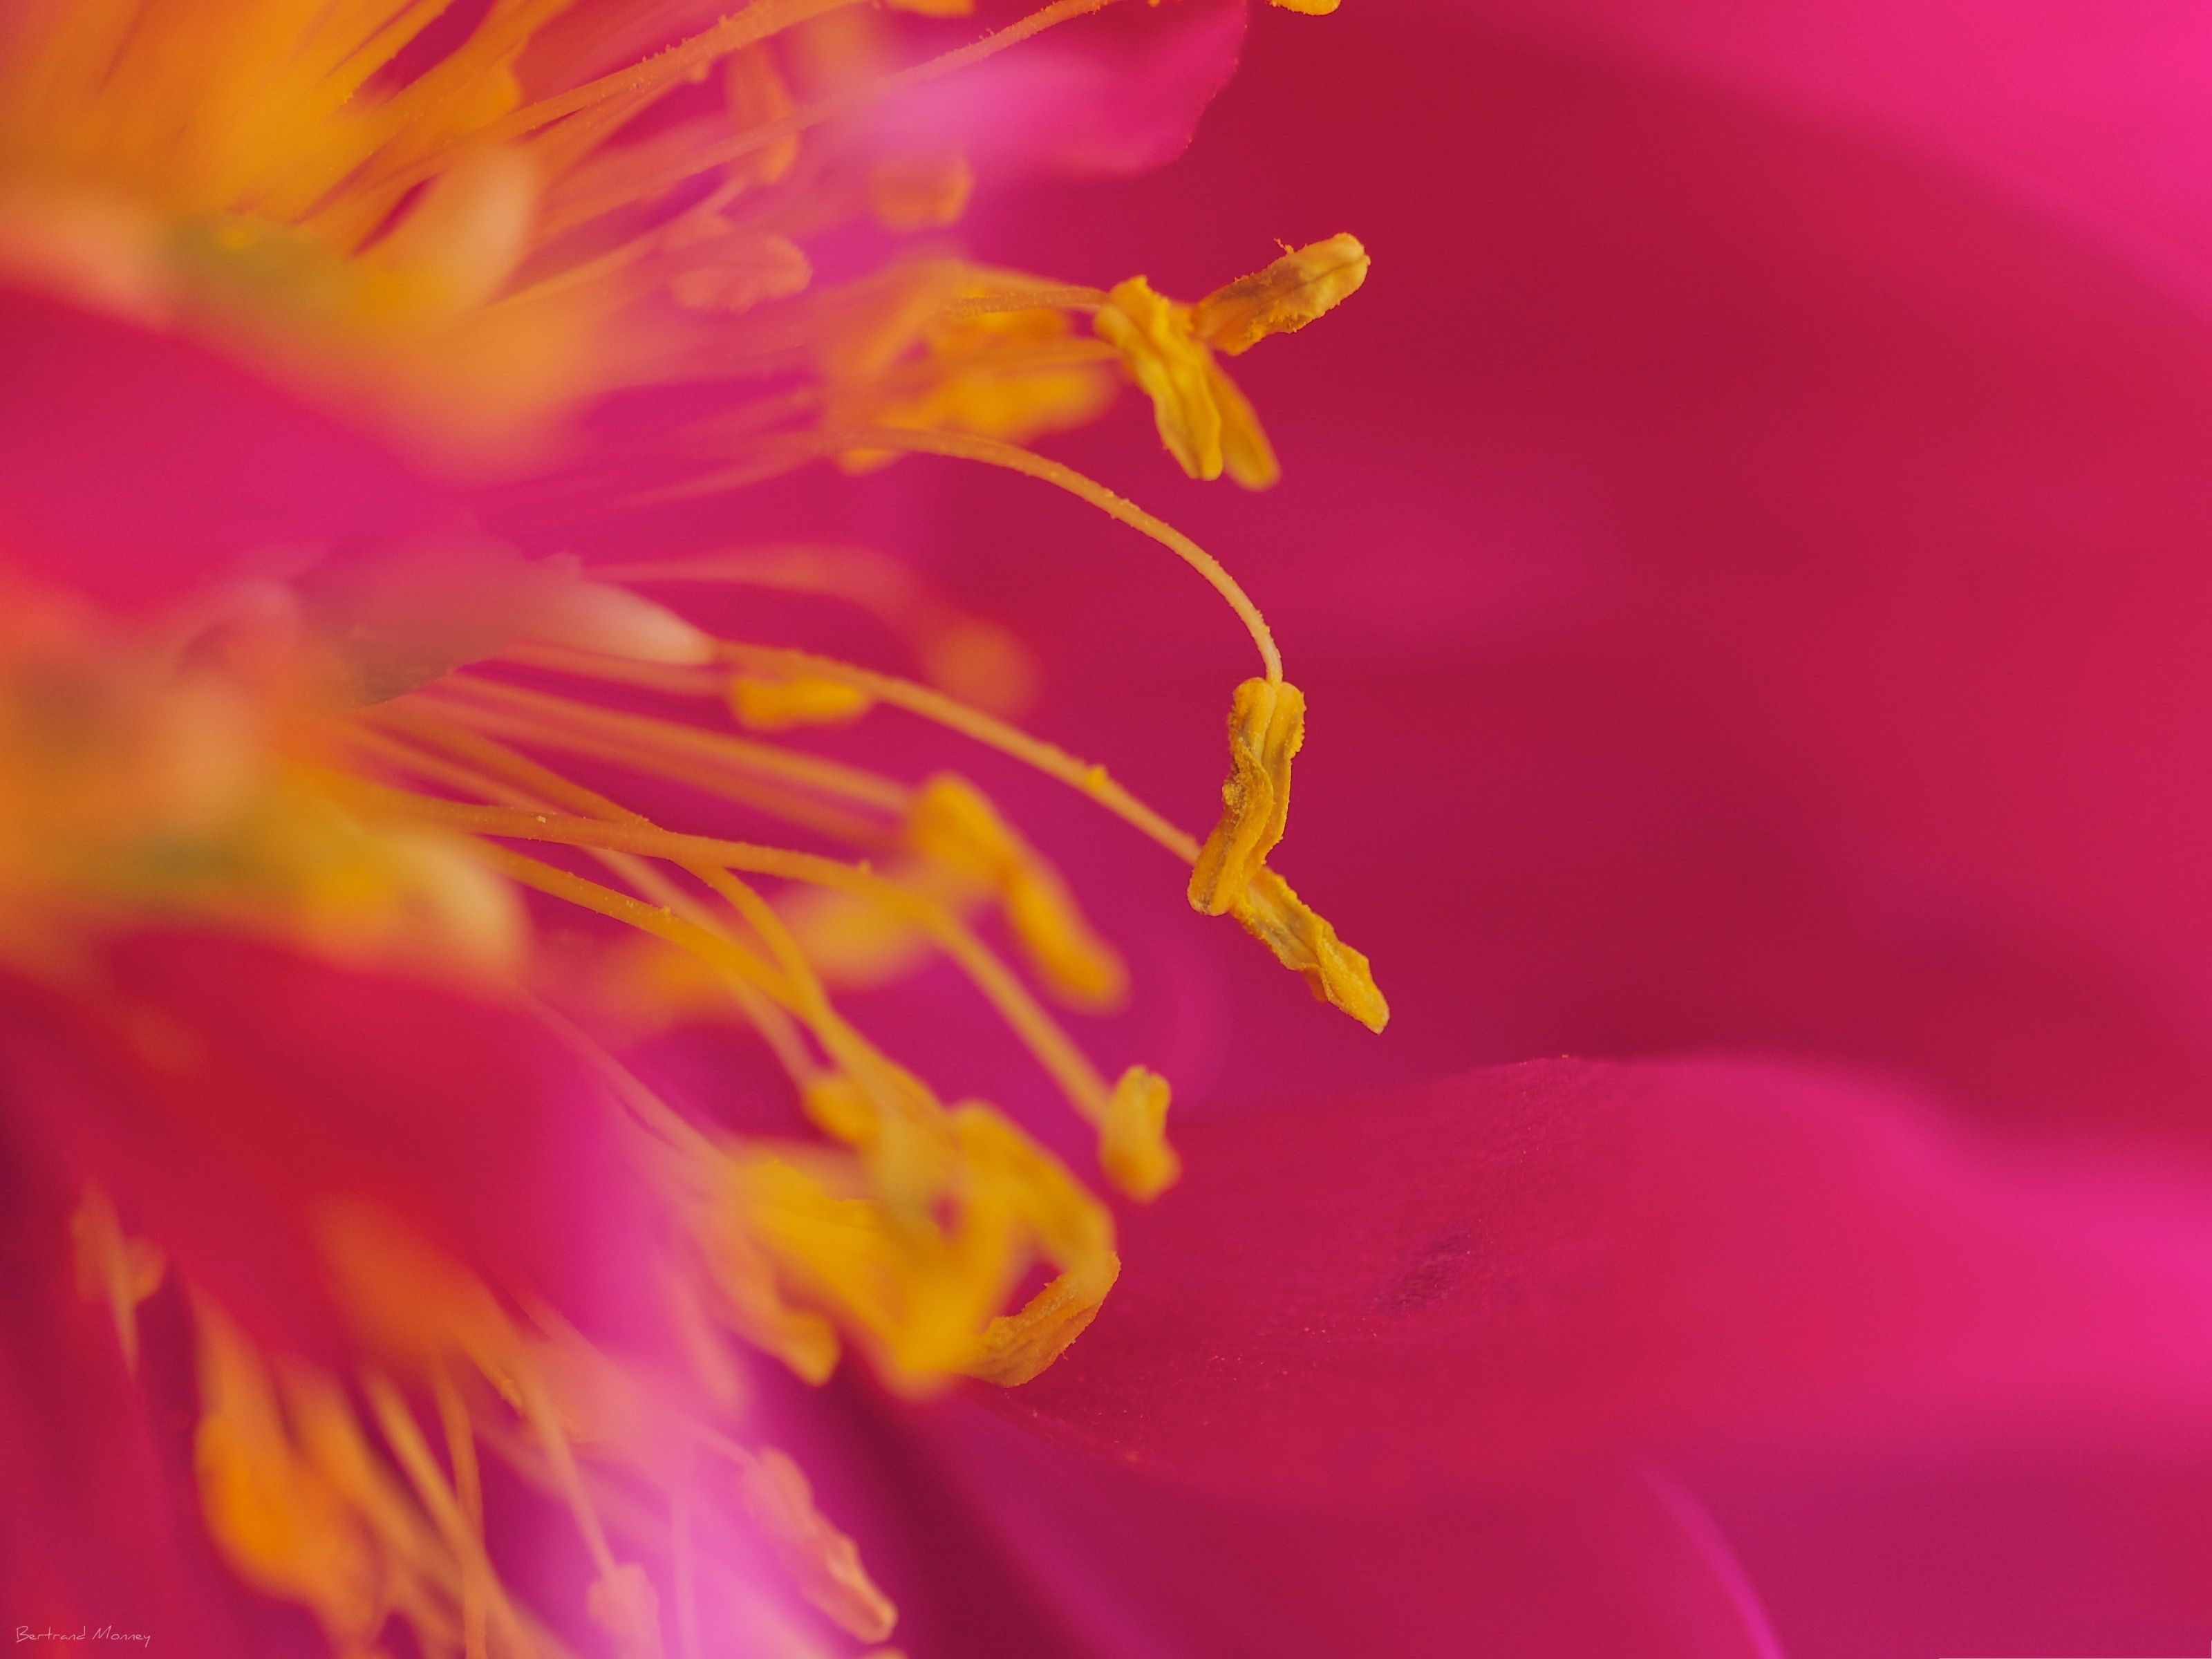 Beautiful flowers picture pink blooming flower and yellow stamen beautiful flowers picture pink blooming flower and yellow stamen mightylinksfo Gallery